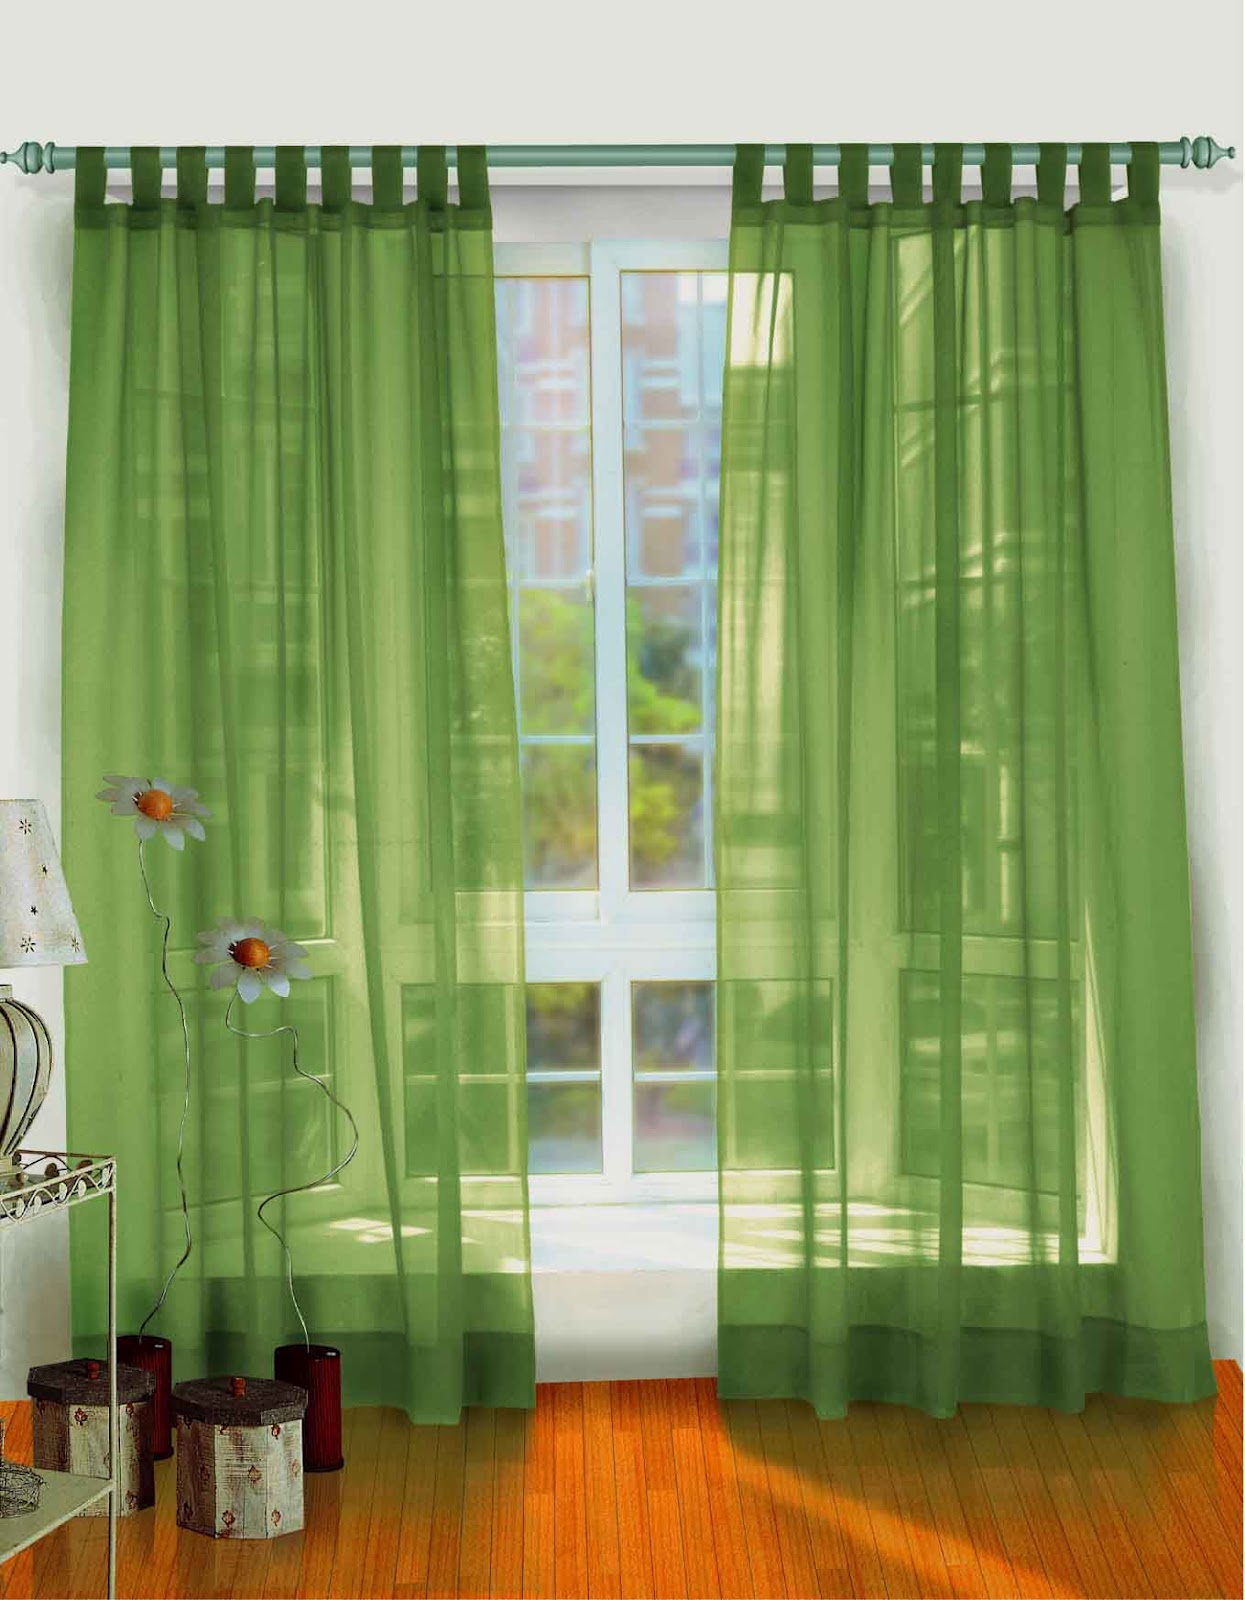 Window and door curtains design interior design ideas for 3 window curtain design